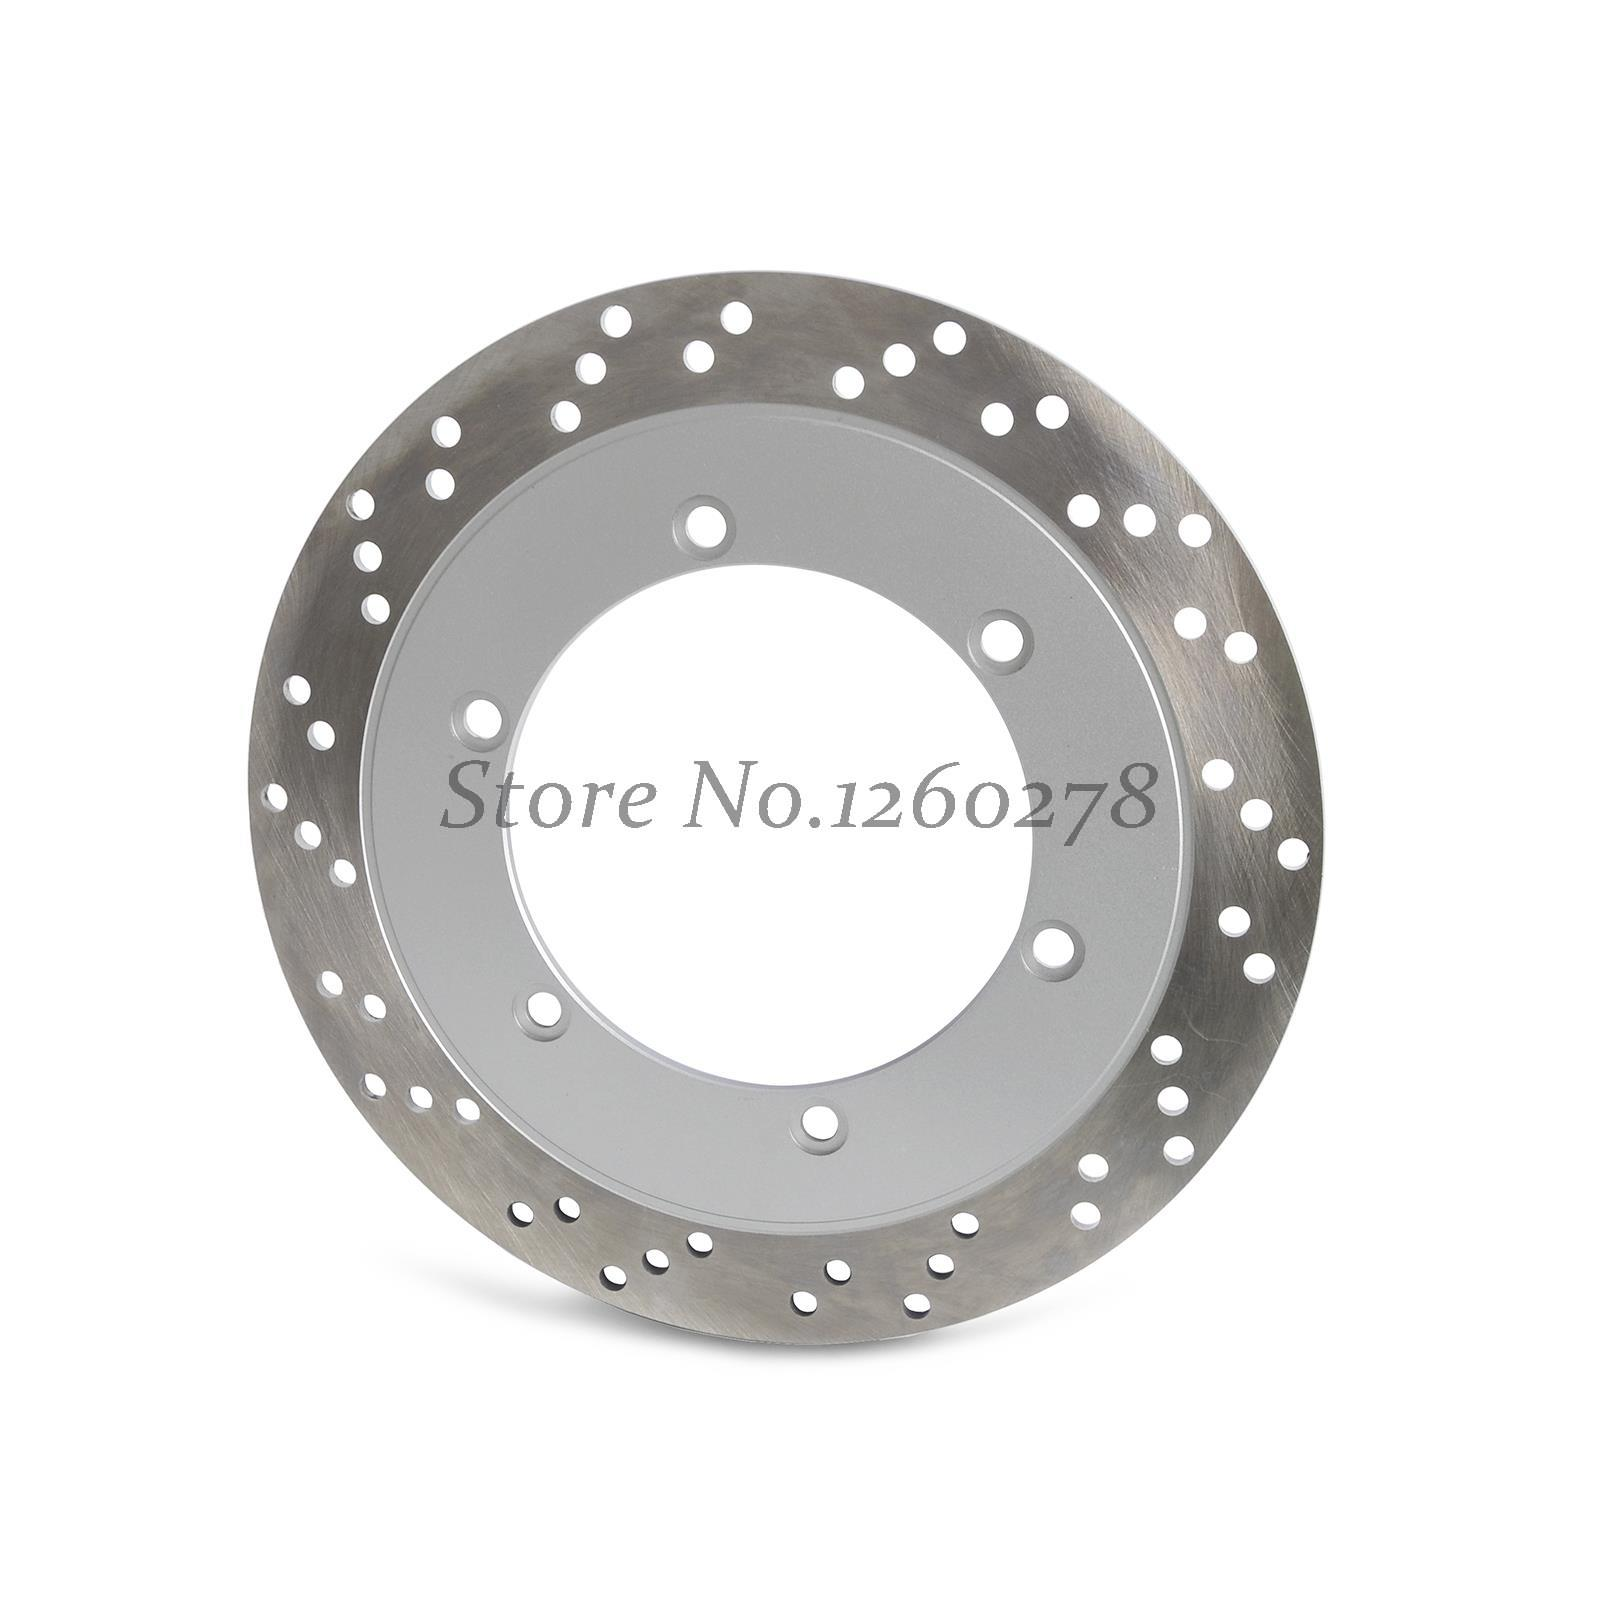 Motorcycle Front Brake Disc Rotor For Honda VT750 Shadow 1997-2009 VT 750 S 10-12 NV 400 Shadow Slasher 2000-2002 for honda steed 400 600 vt600 shadow 400 750 magna 250 750 motorcycle front brake clutch left 1 25mm chrome